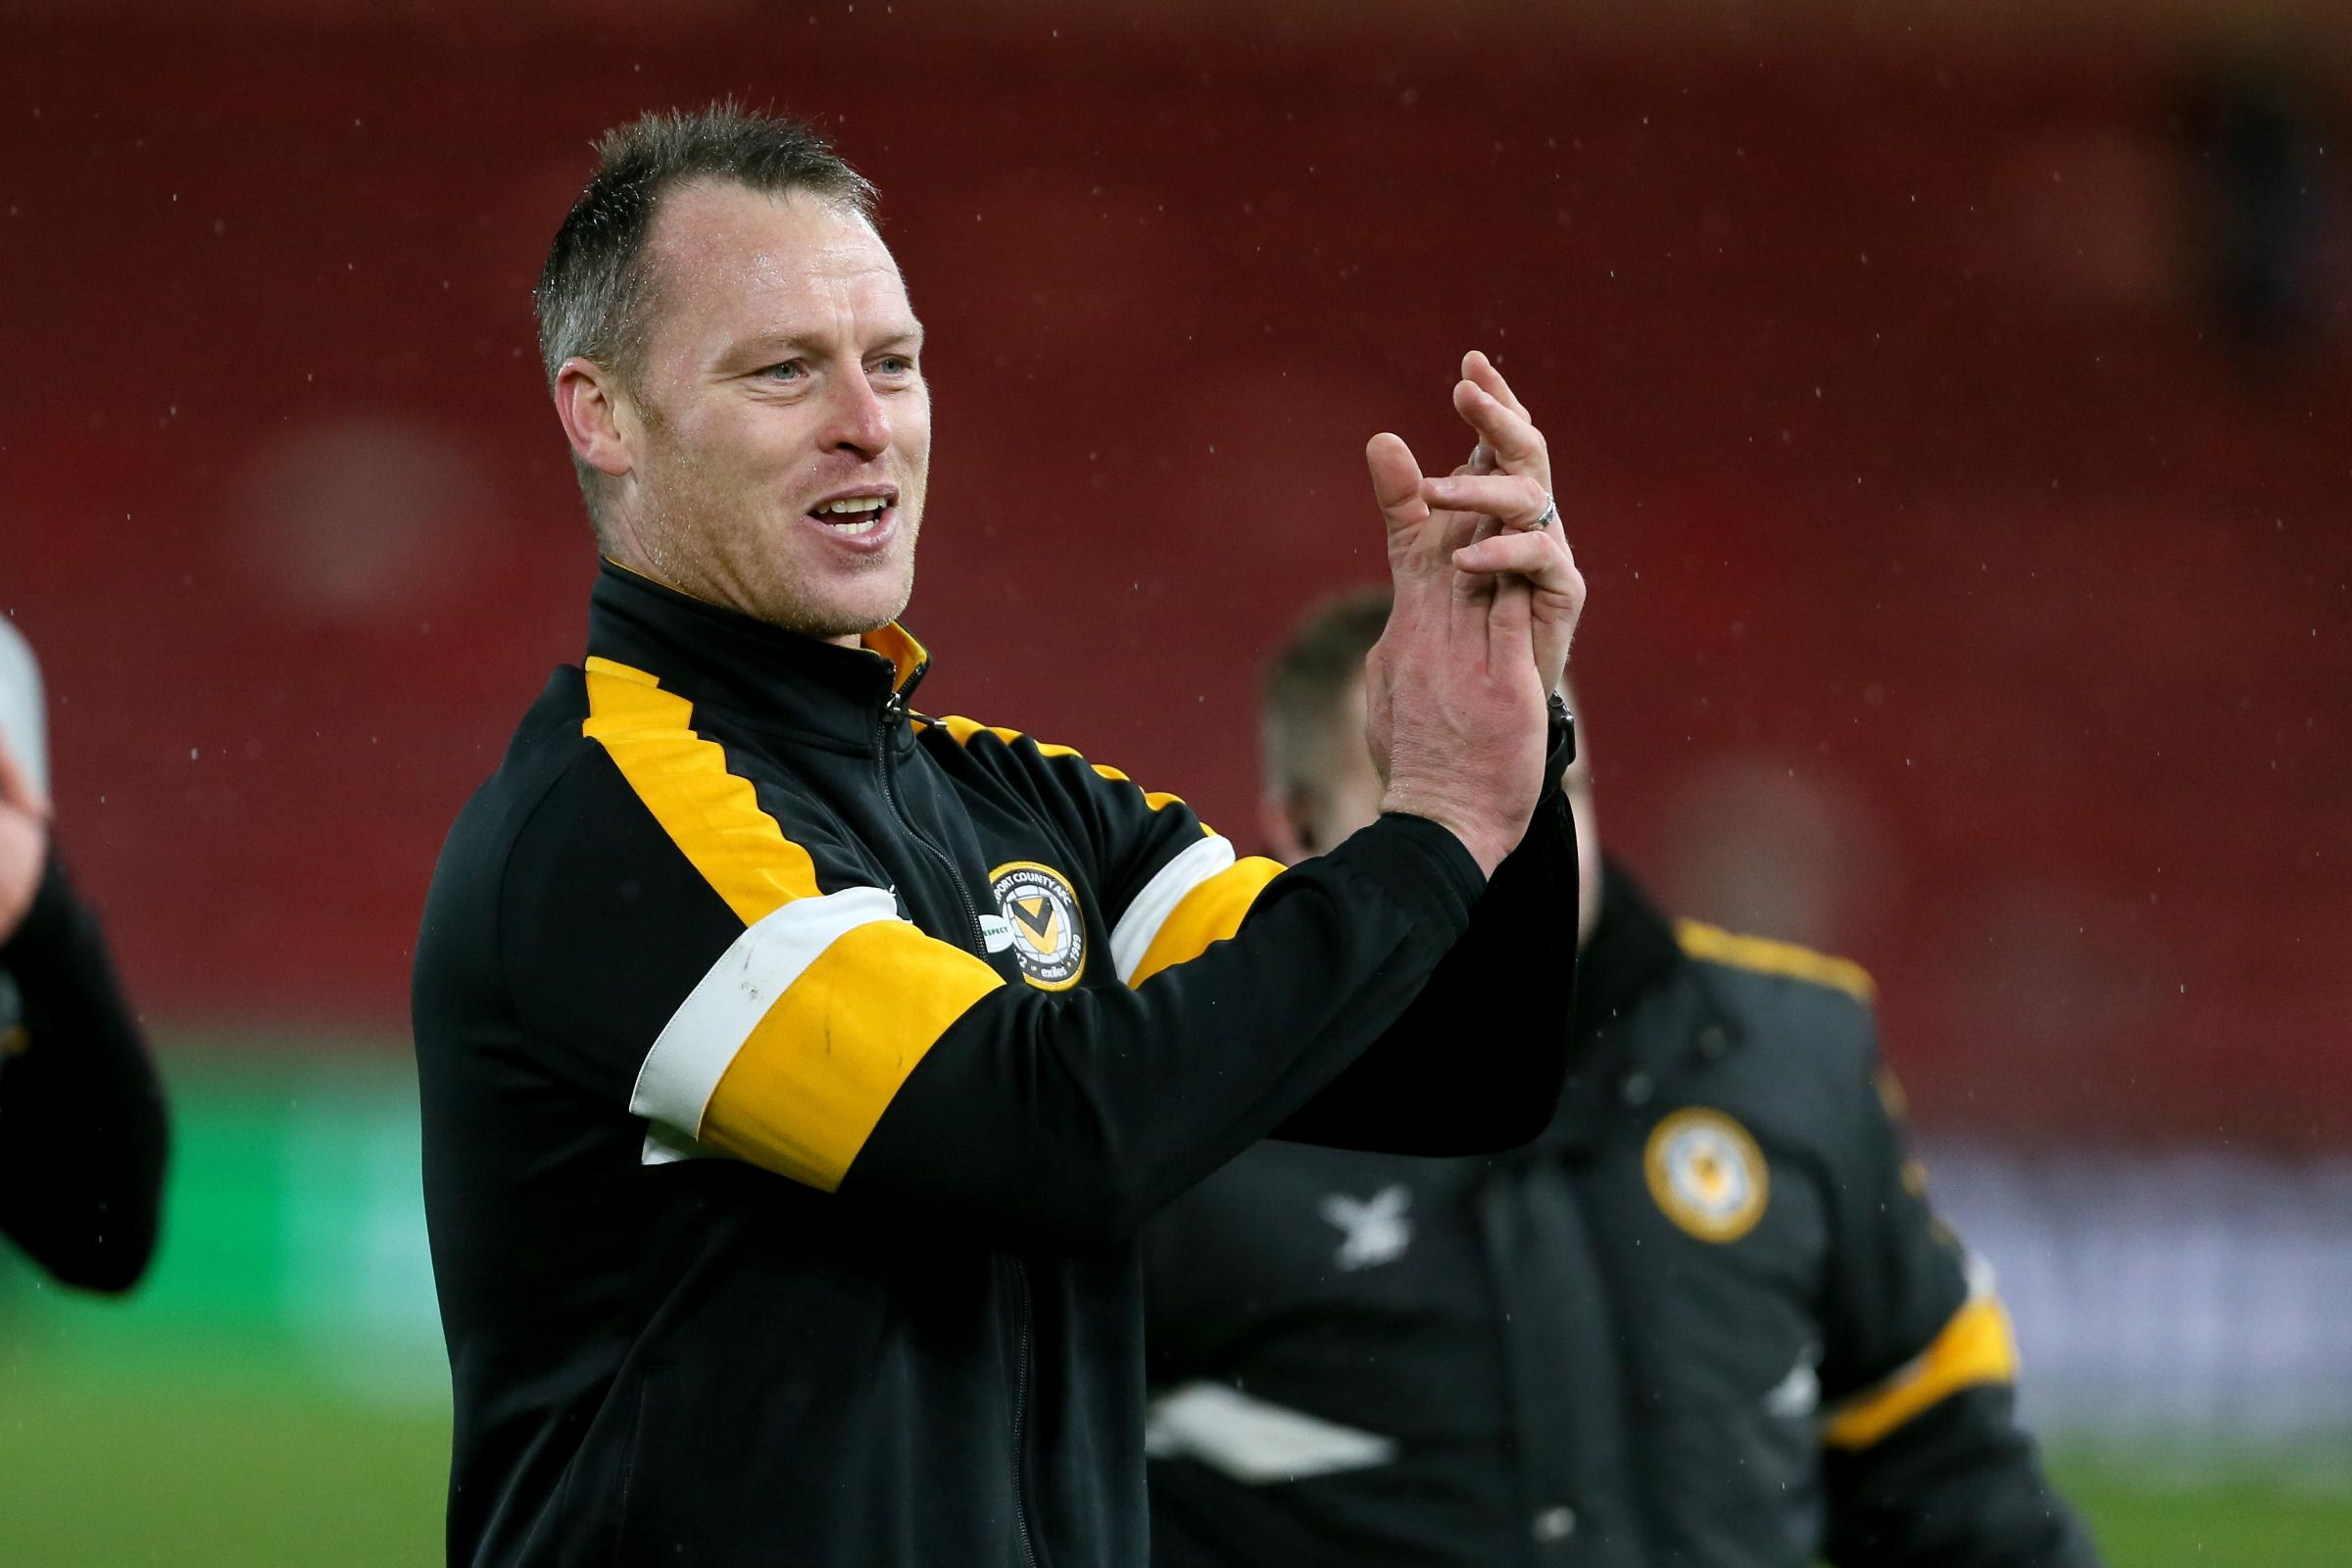 Newport manager Michael Flynn has overseen a string of fine FA Cup results against higher-level opponents